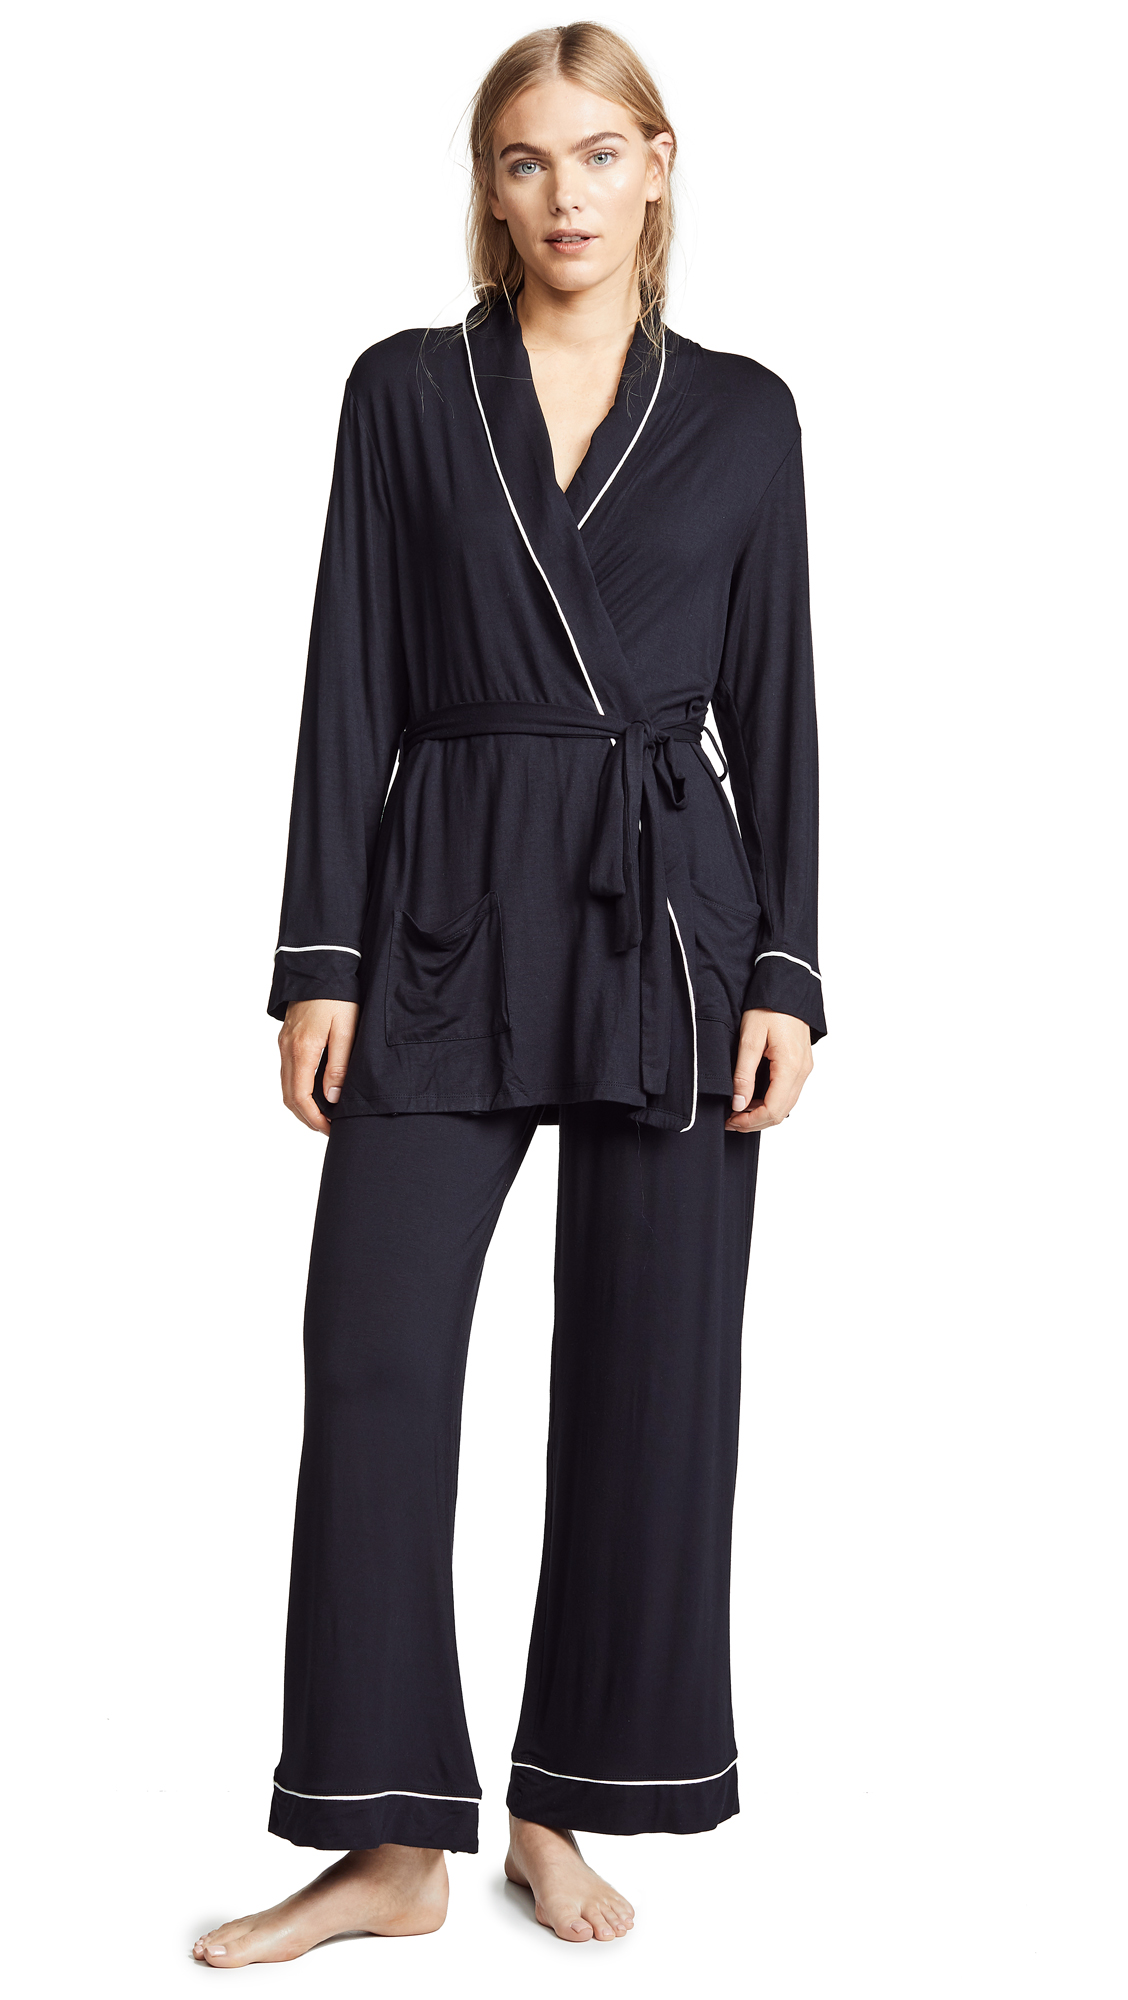 Eberjey Gisele Nightcap PJ Set - Black/Ivory